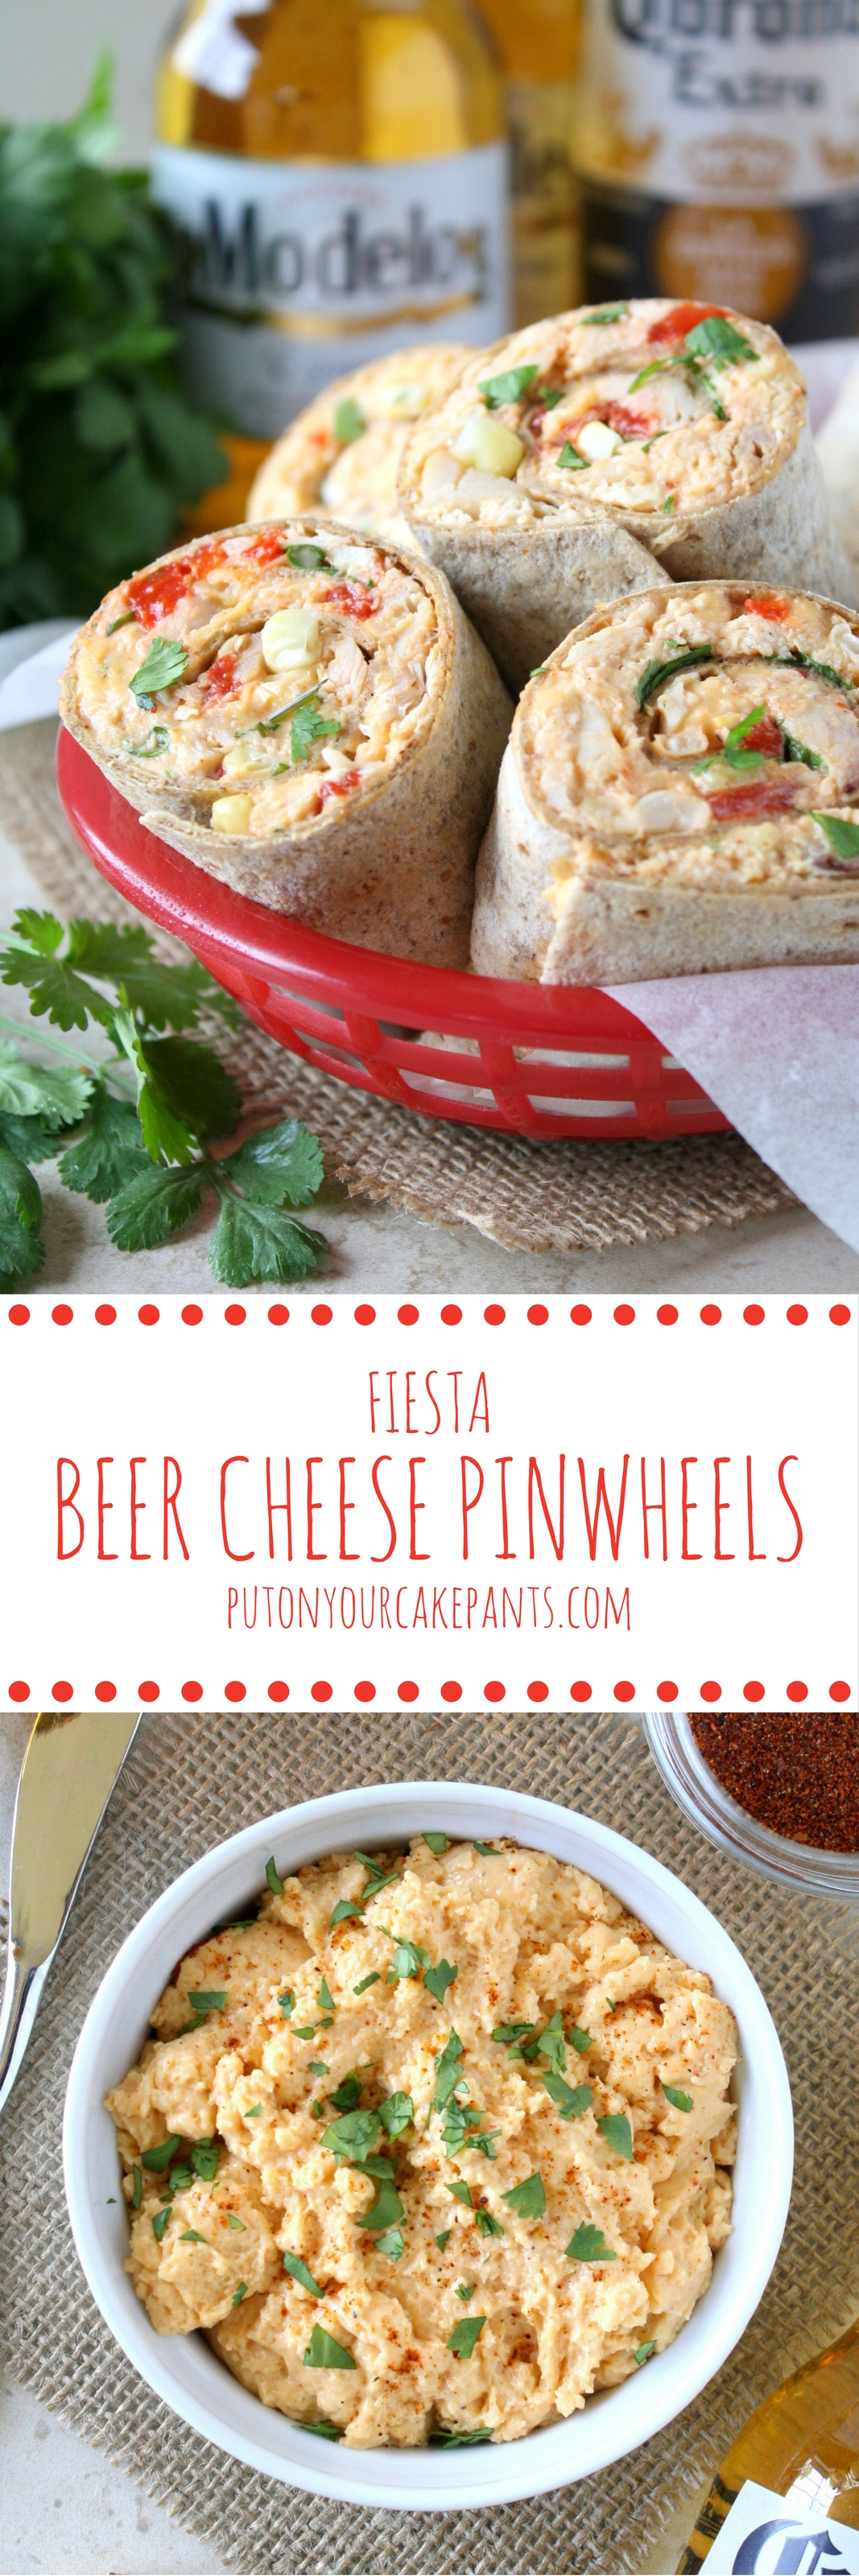 fiesta beer cheese pinwheels #CervezaCelebration #shop